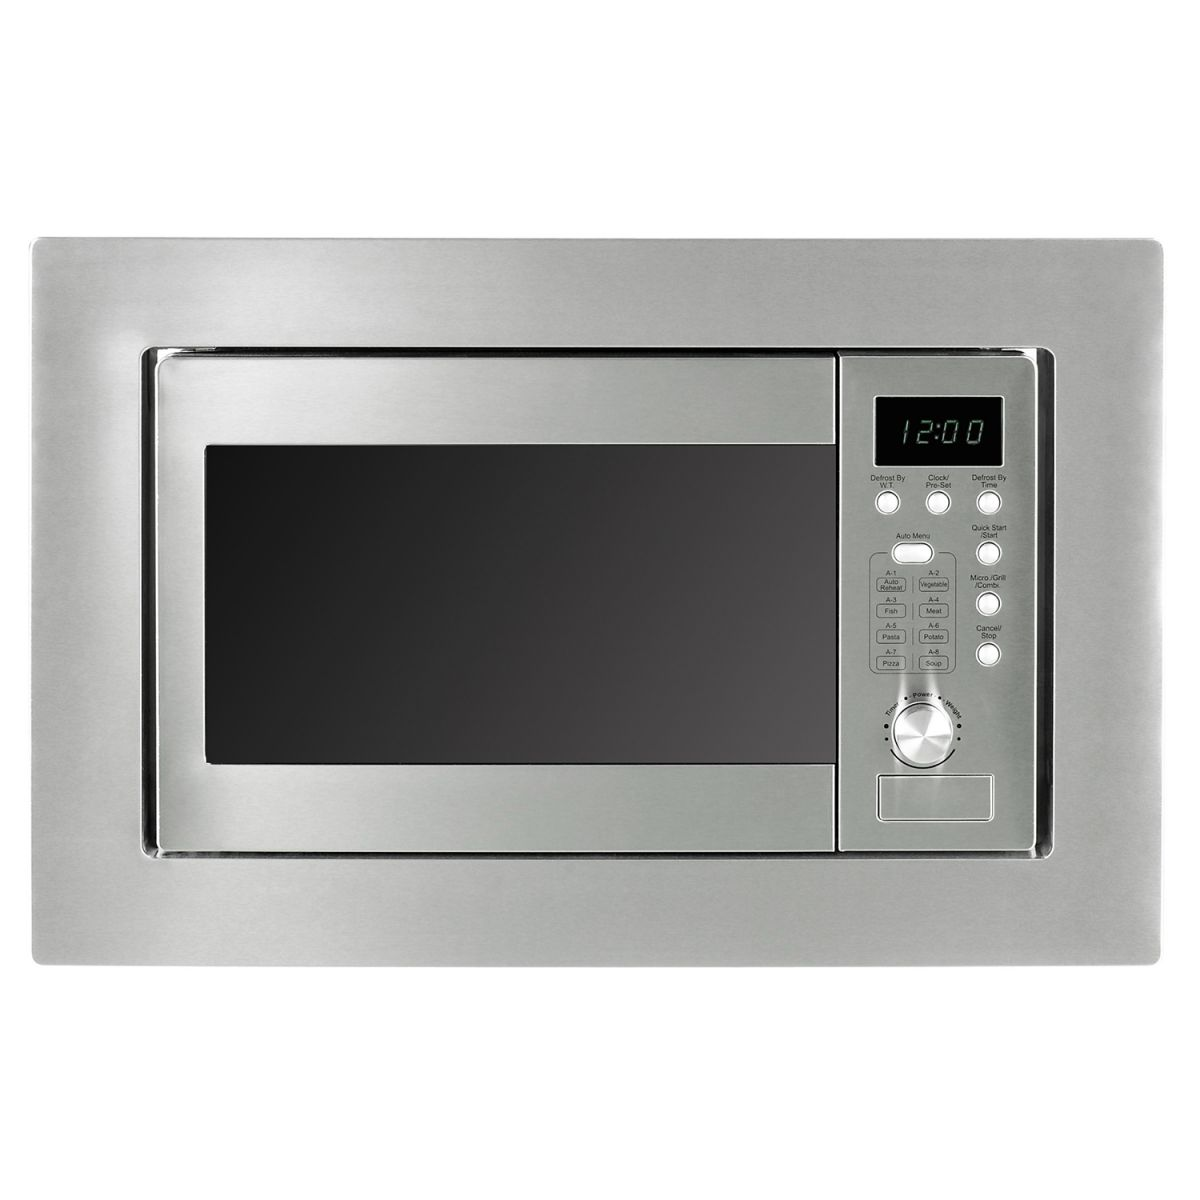 MyAppliances REF28604 Built In S/Steel Microwave & Grill